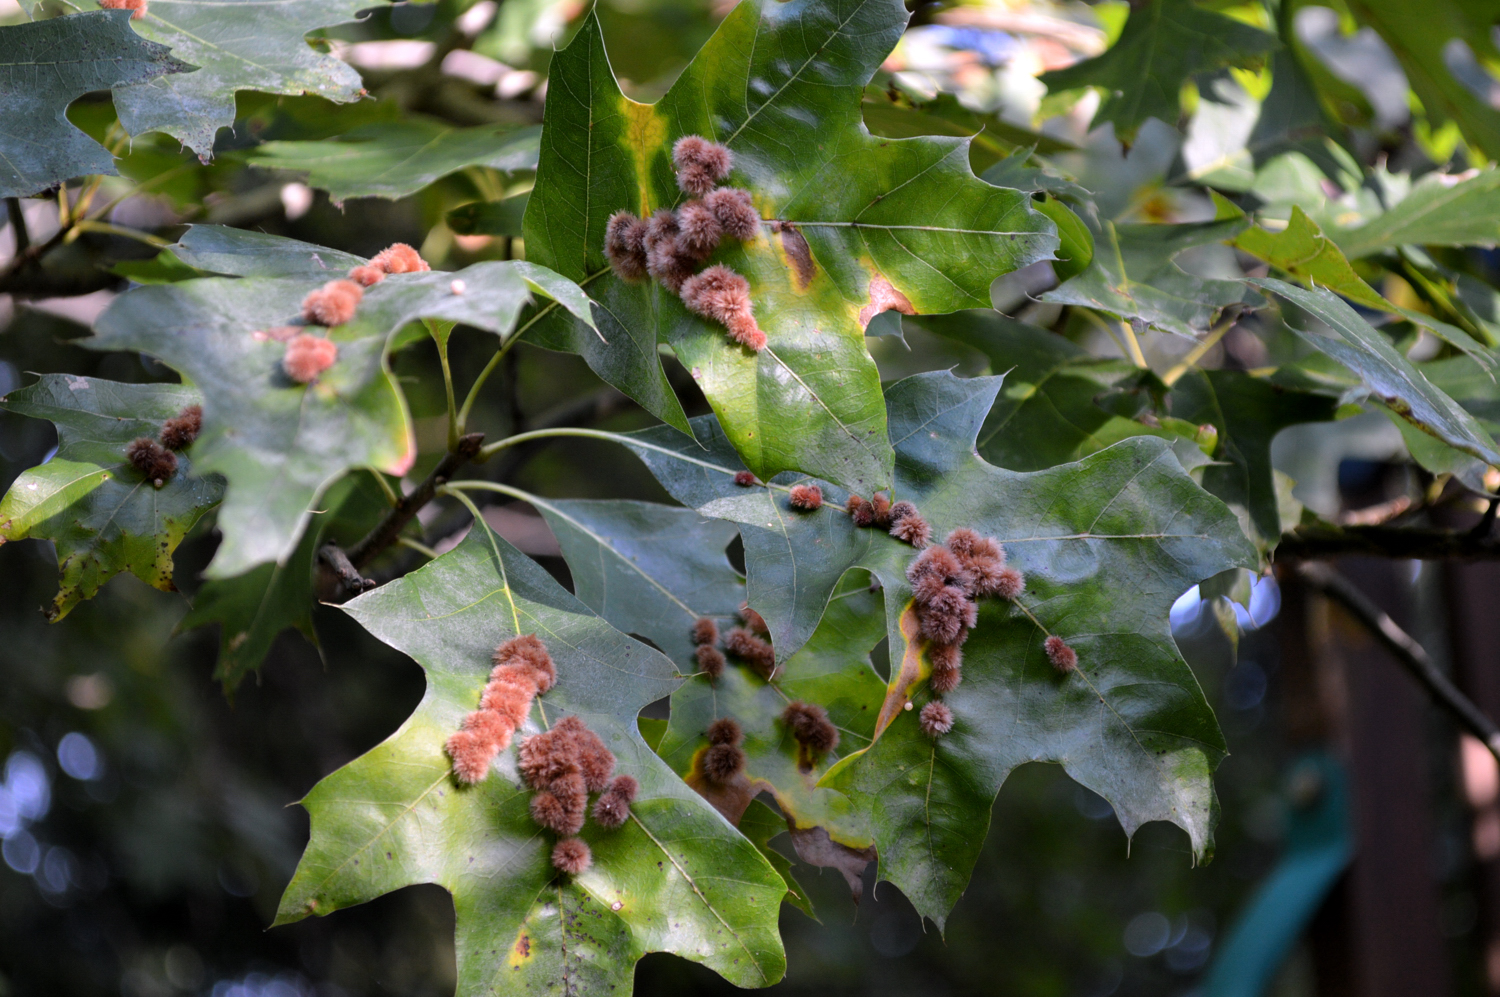 Nh Notes Fuzzy Orange Galls On Oak Leaves Naturalis Historia